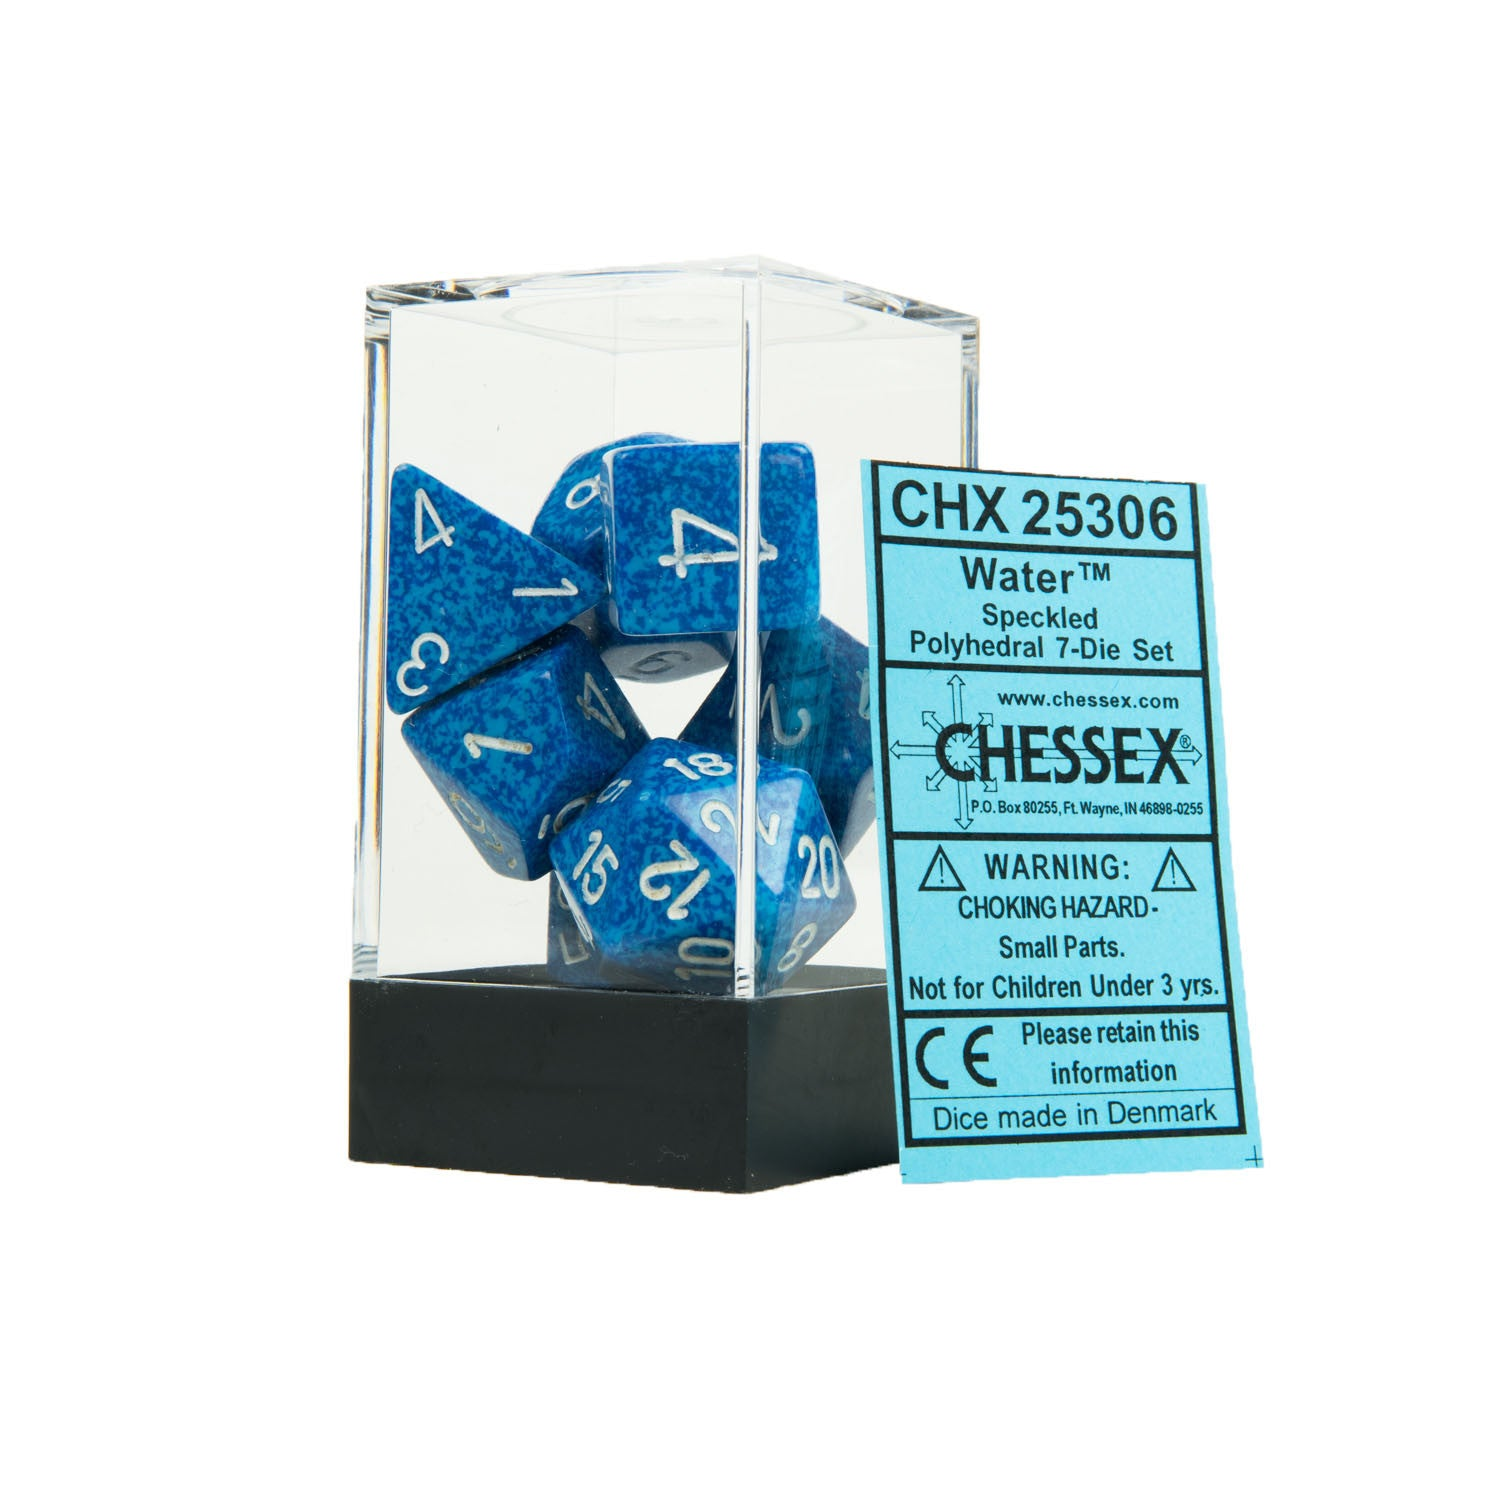 Chessex CHX25306 Water™ Speckled Polyhedral Dice Set